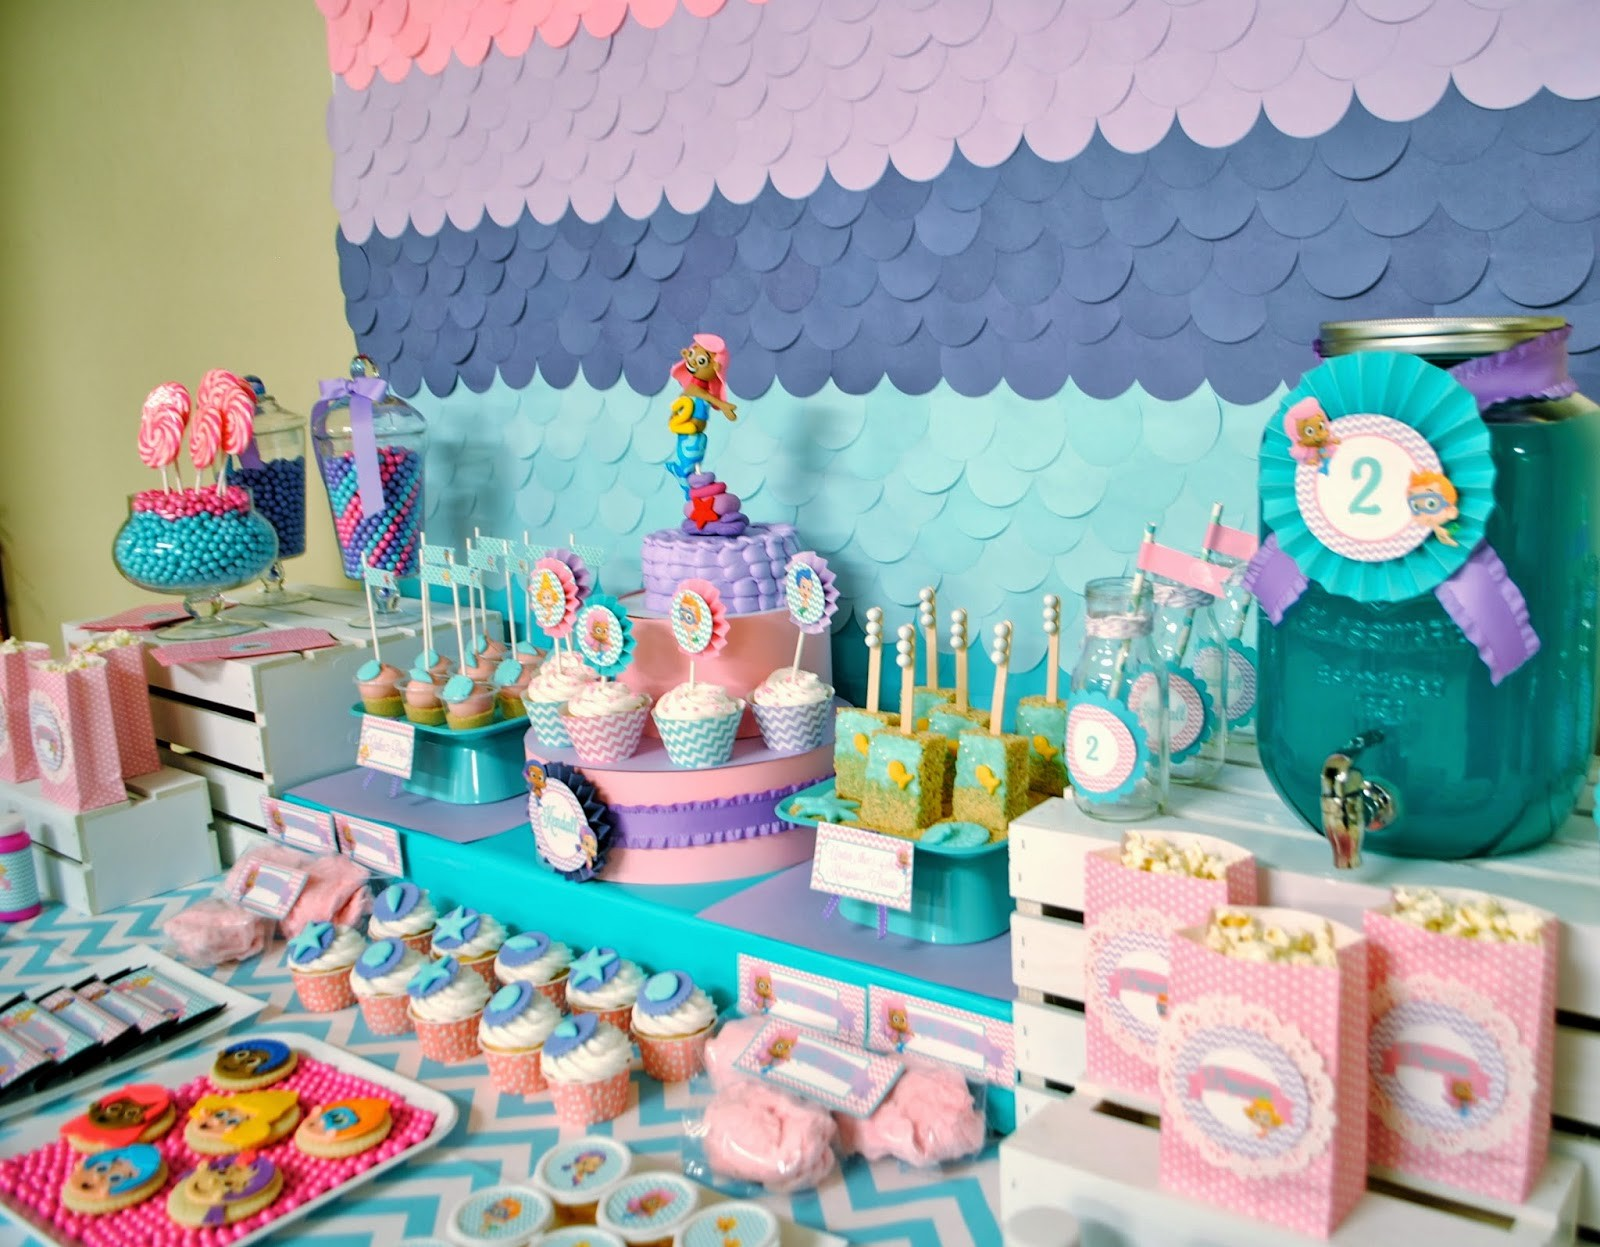 fun at home birthday party ideas ; 2nd-birthday-party-ideas-lovely-gallery-concerning-karos-fun-land-bubble-guppies-2nd-birthday-party-of-2nd-birthday-party-ideas